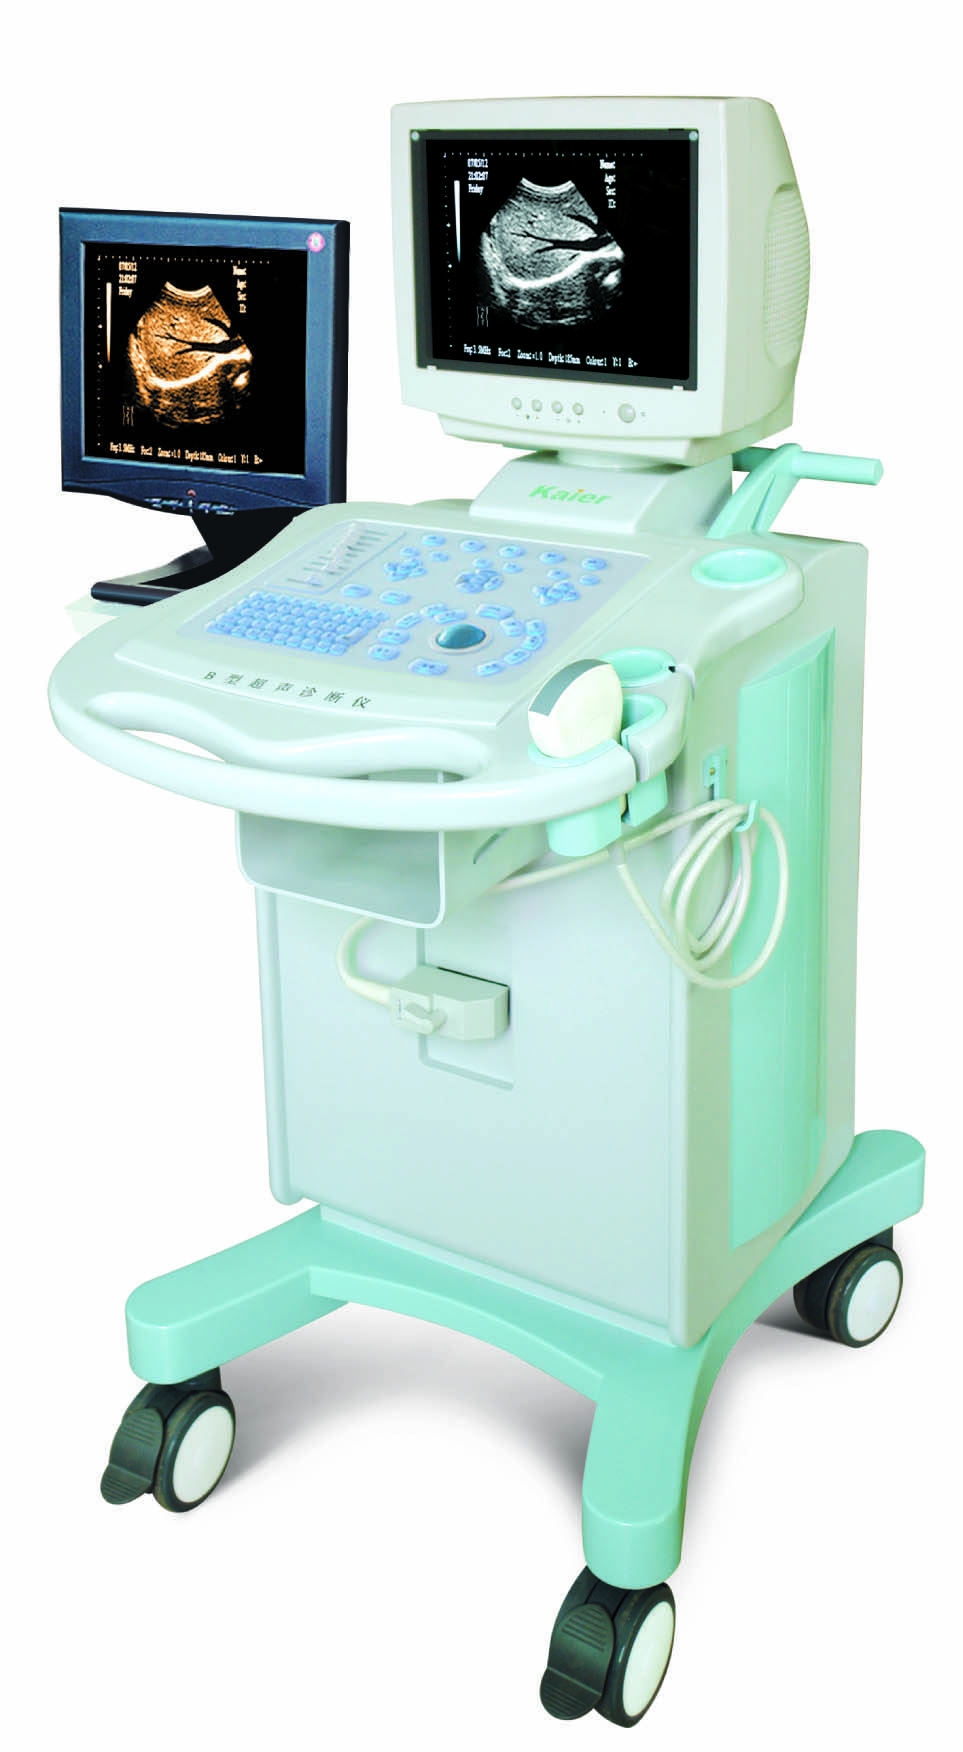 sell ultrasound diagnostic equipment